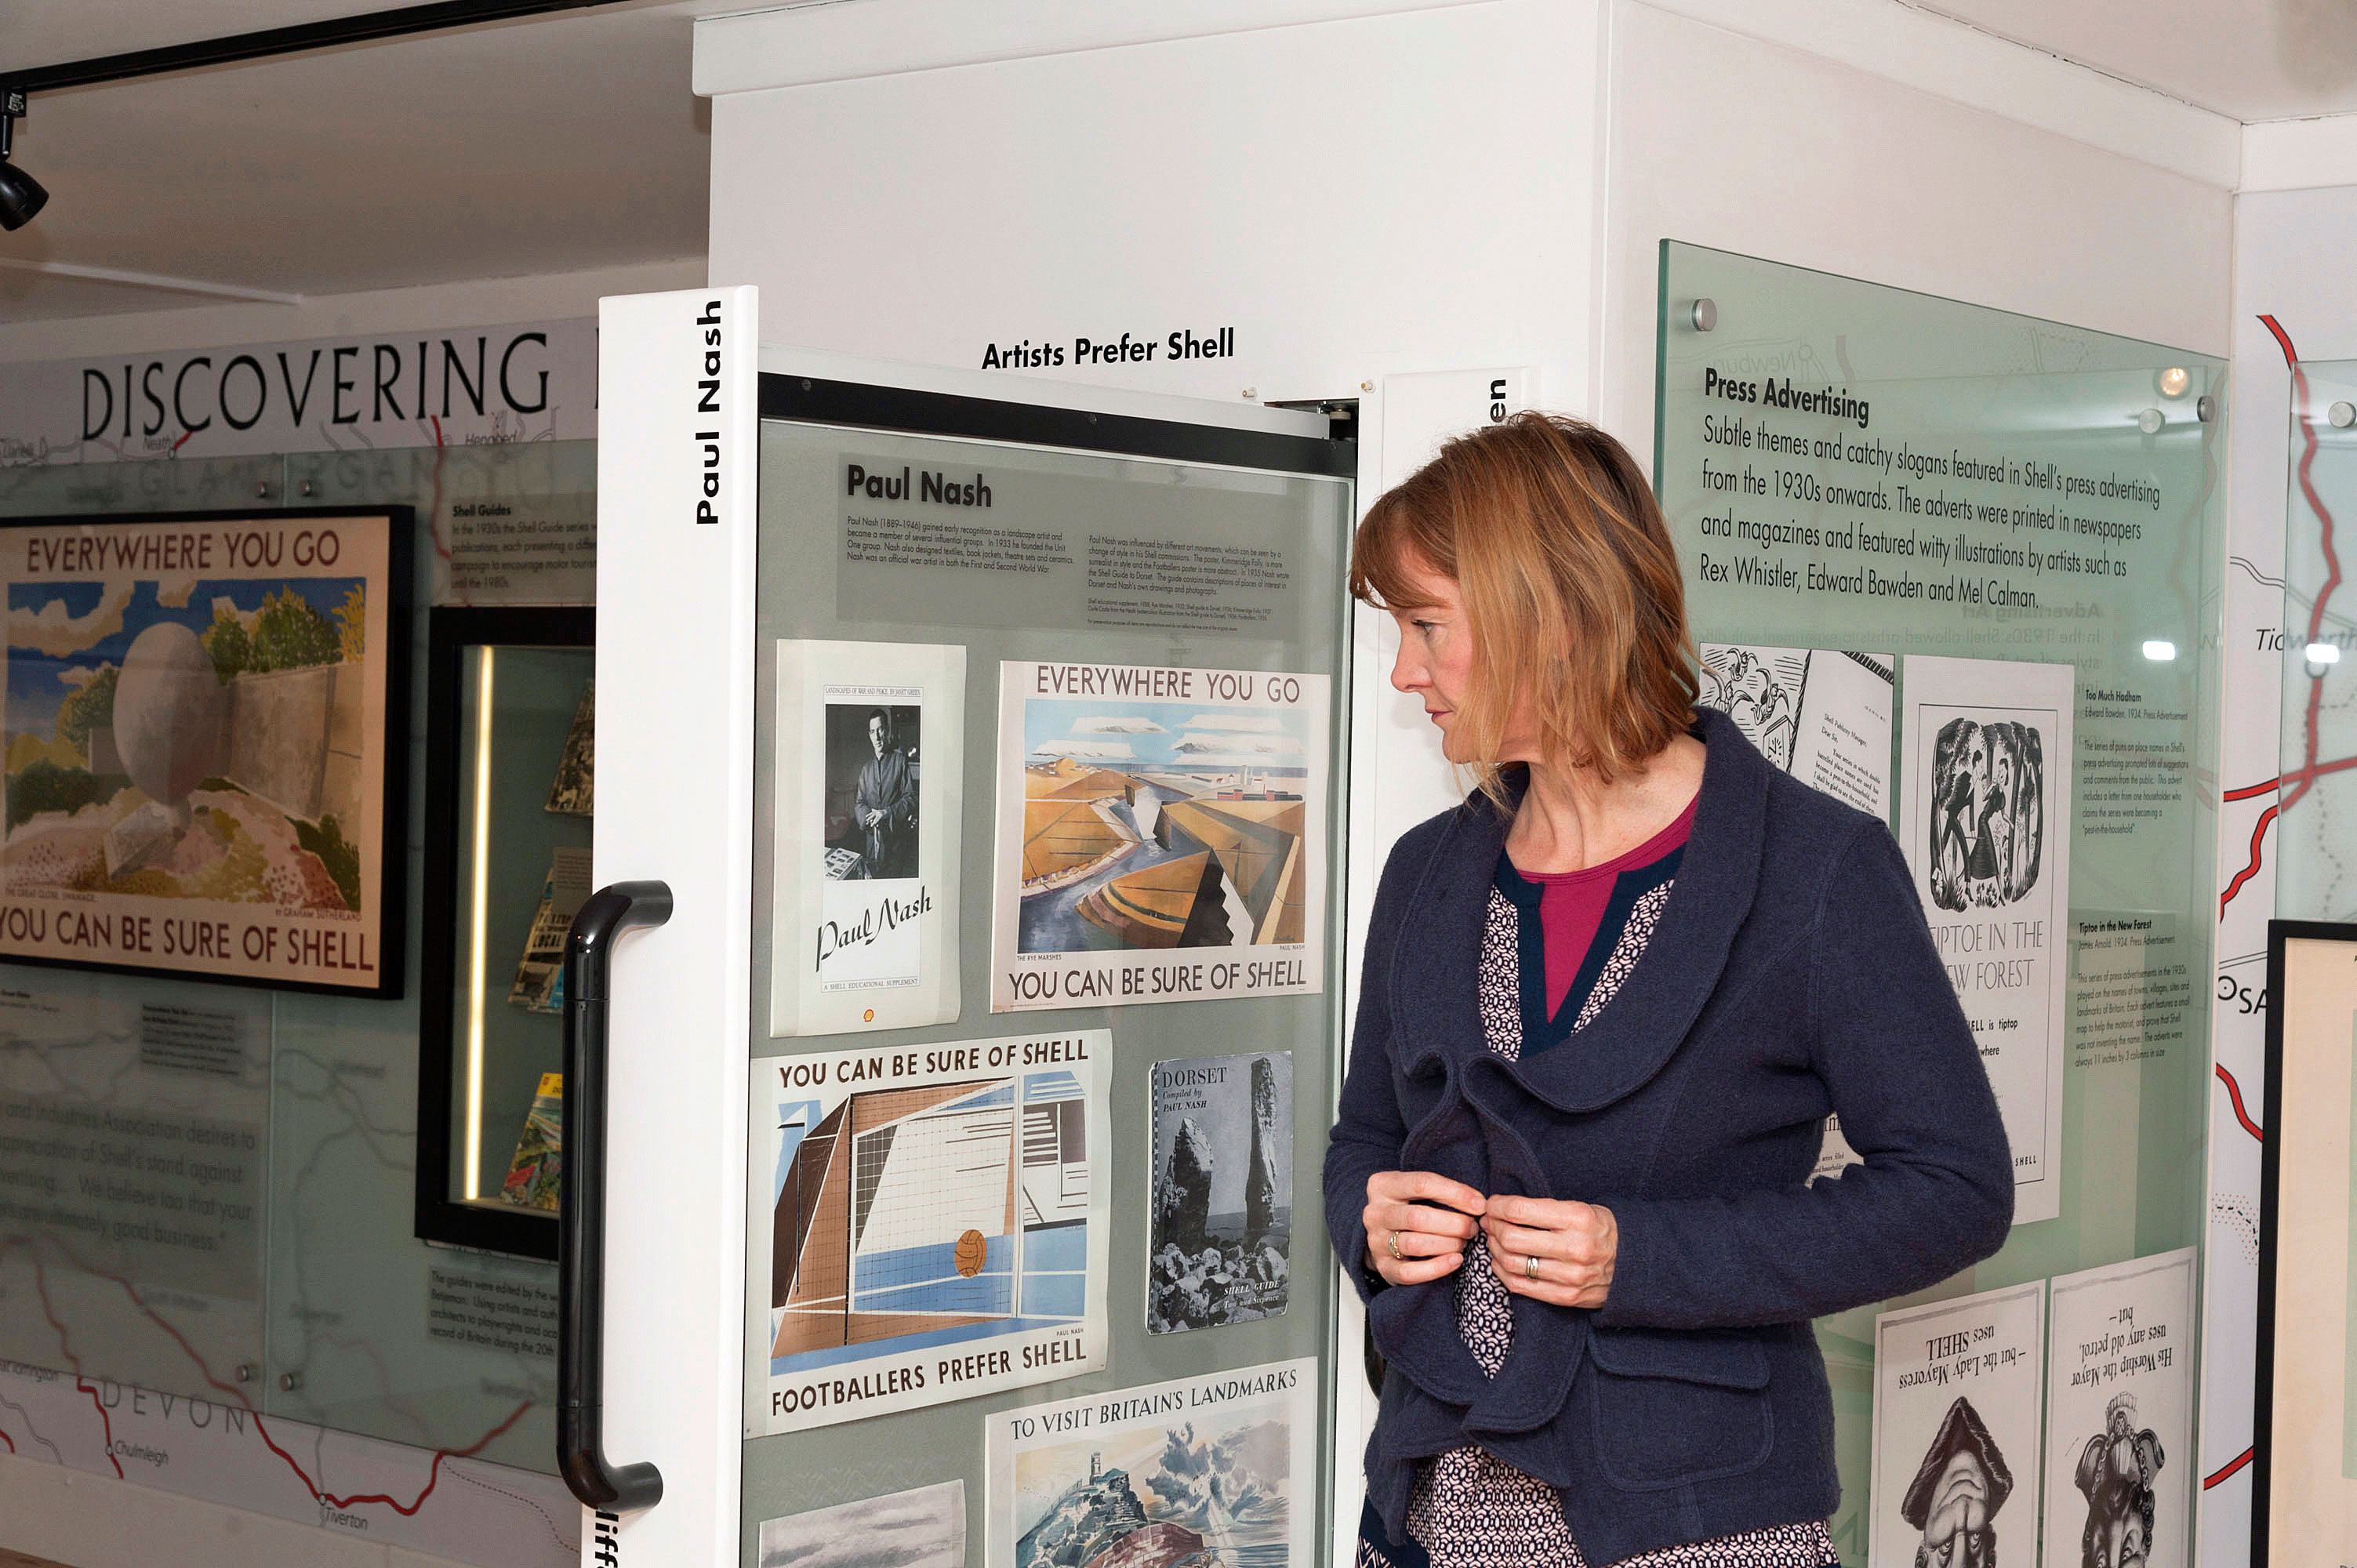 A woman looking at the Shell display booth at the National Motor Museum.